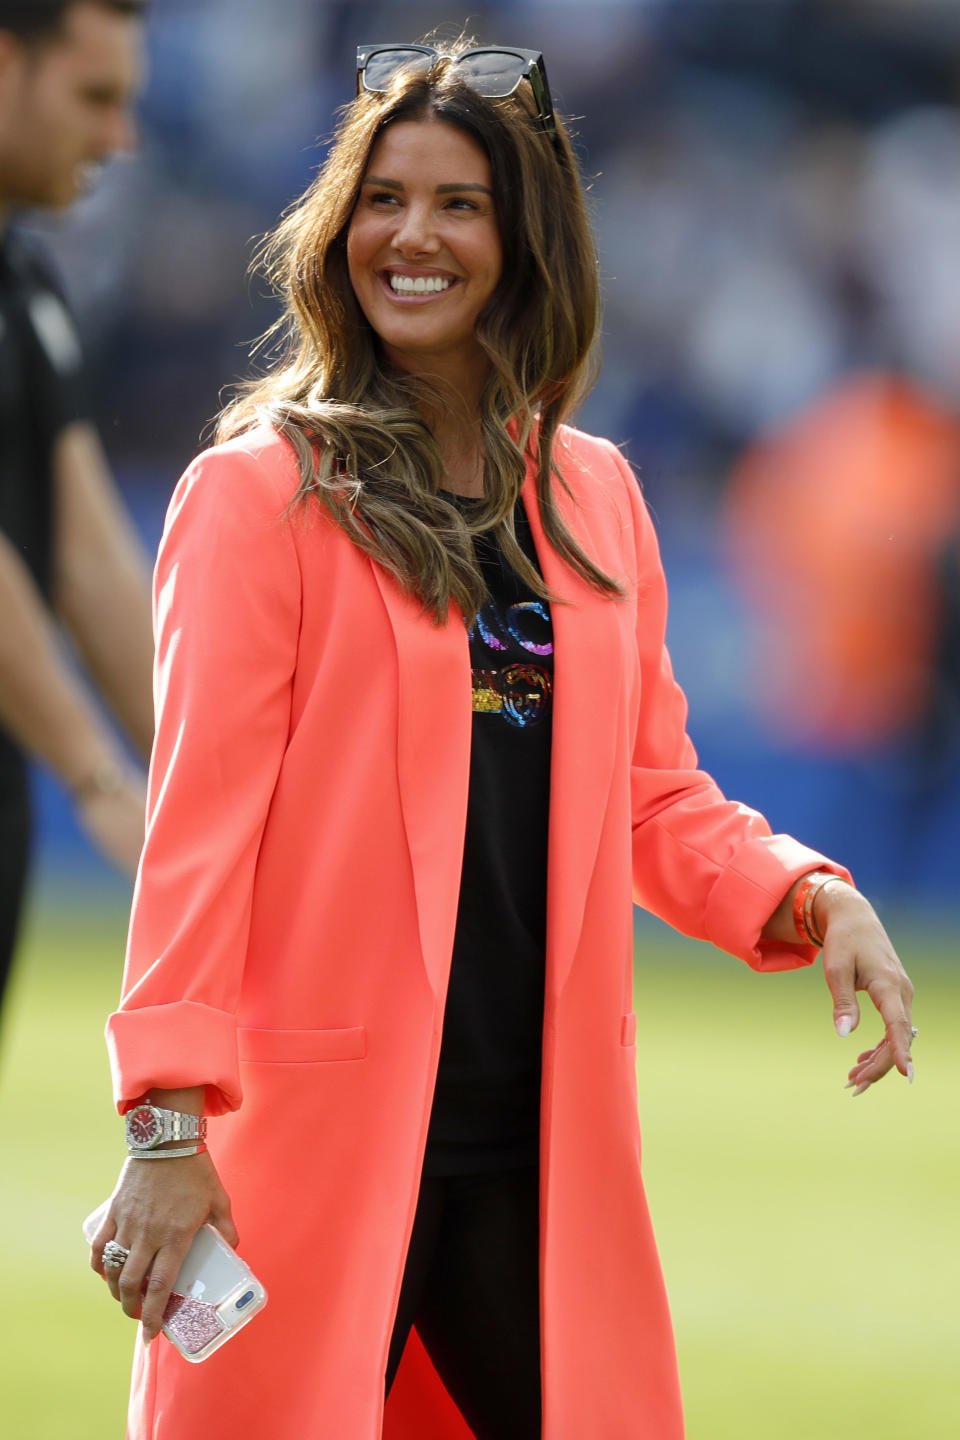 Rebekah Vardy, wife of Jamie Vardy, walks around the pitch following the Premier League match between Leicester City and Chelsea FC at The King Power Stadium on May 12, 2019 in Leicester, United Kingdom. (Photo by Malcolm Couzens/Getty Images)